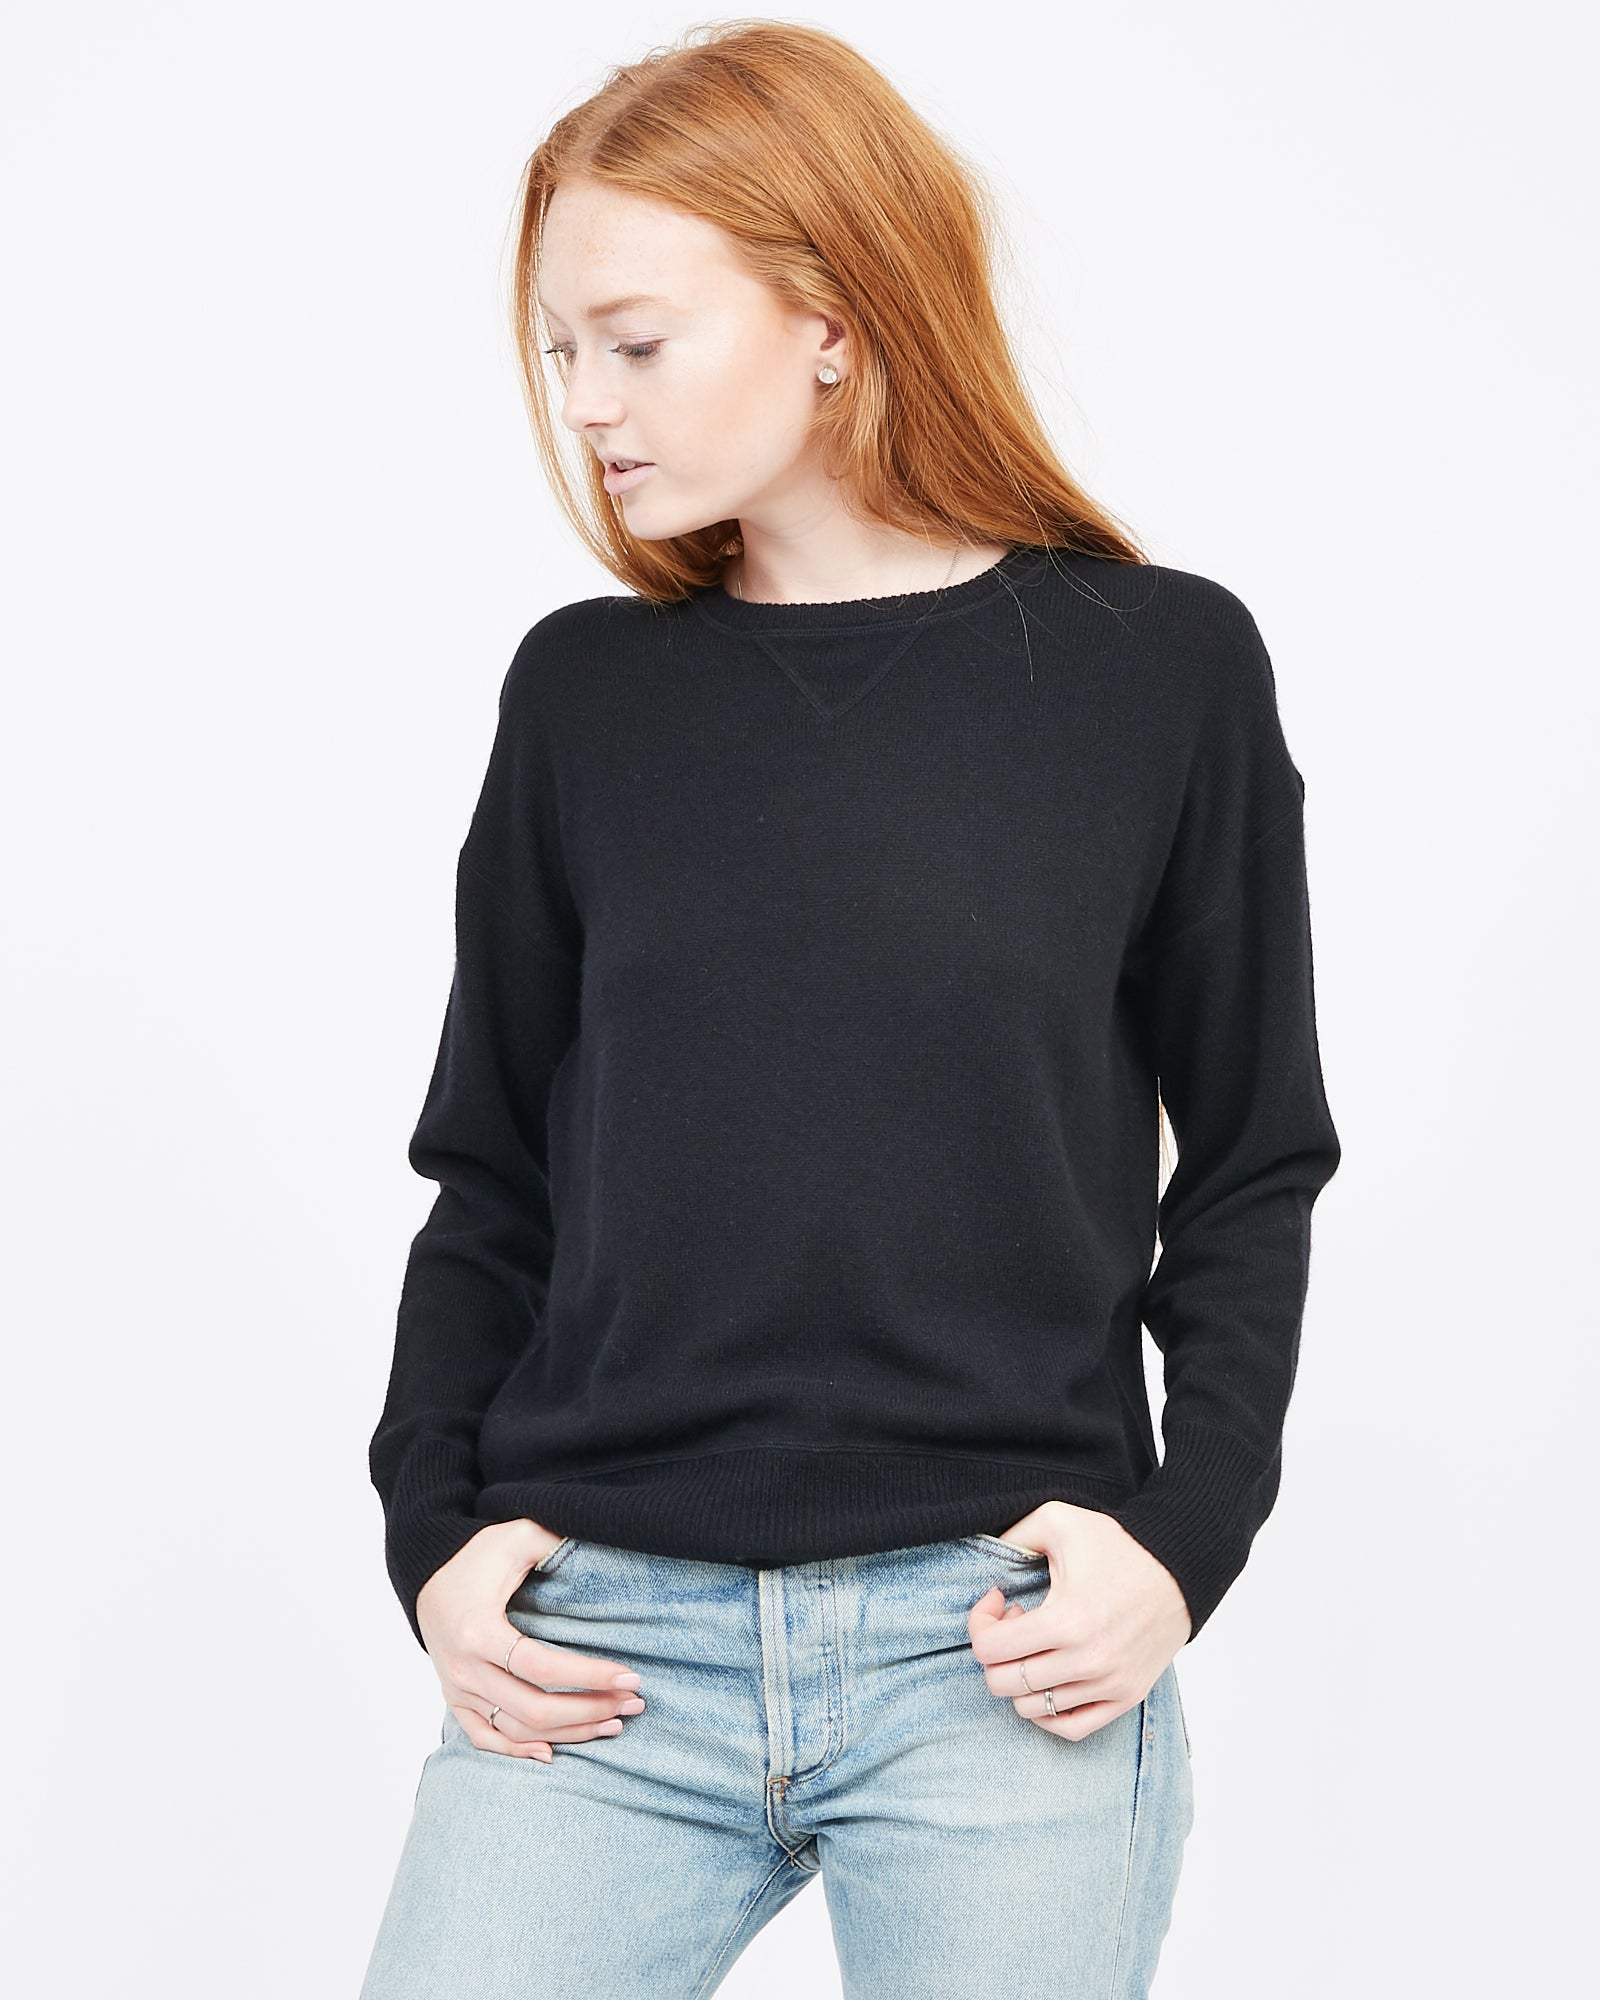 Jersey Stitch Cashmere Pullover